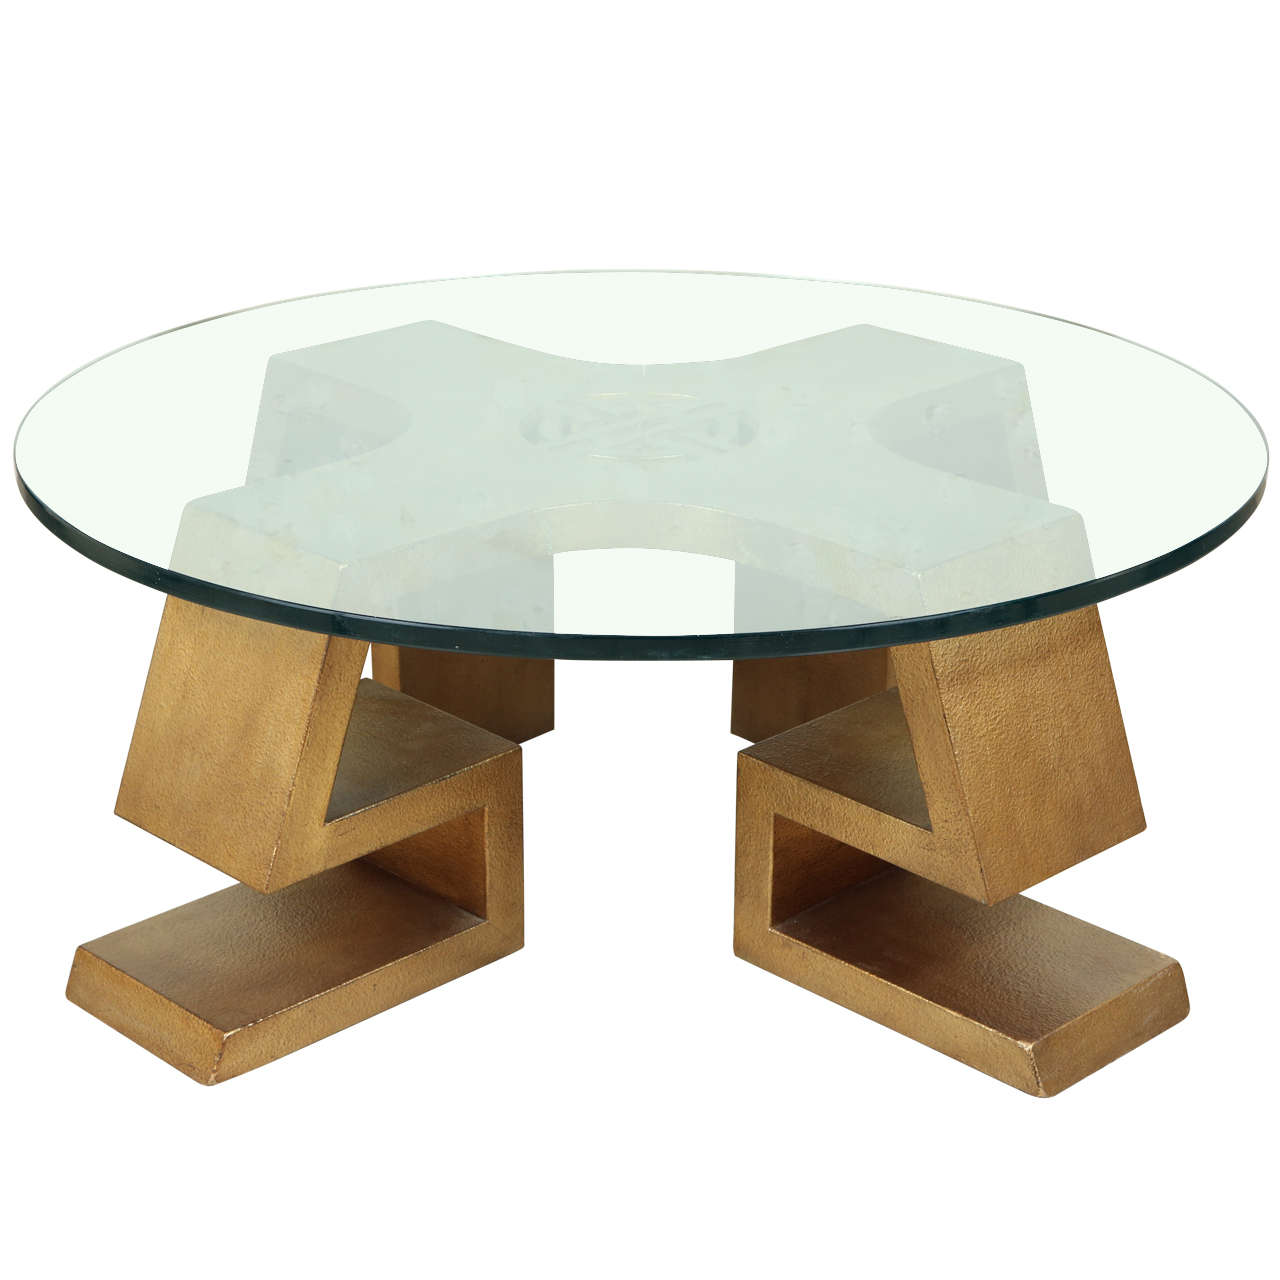 Aurelle Home Amanda Glass Top Rectangle Coffee Table: Oriental Gold Leafed Coffee Table By James Mont At 1stdibs